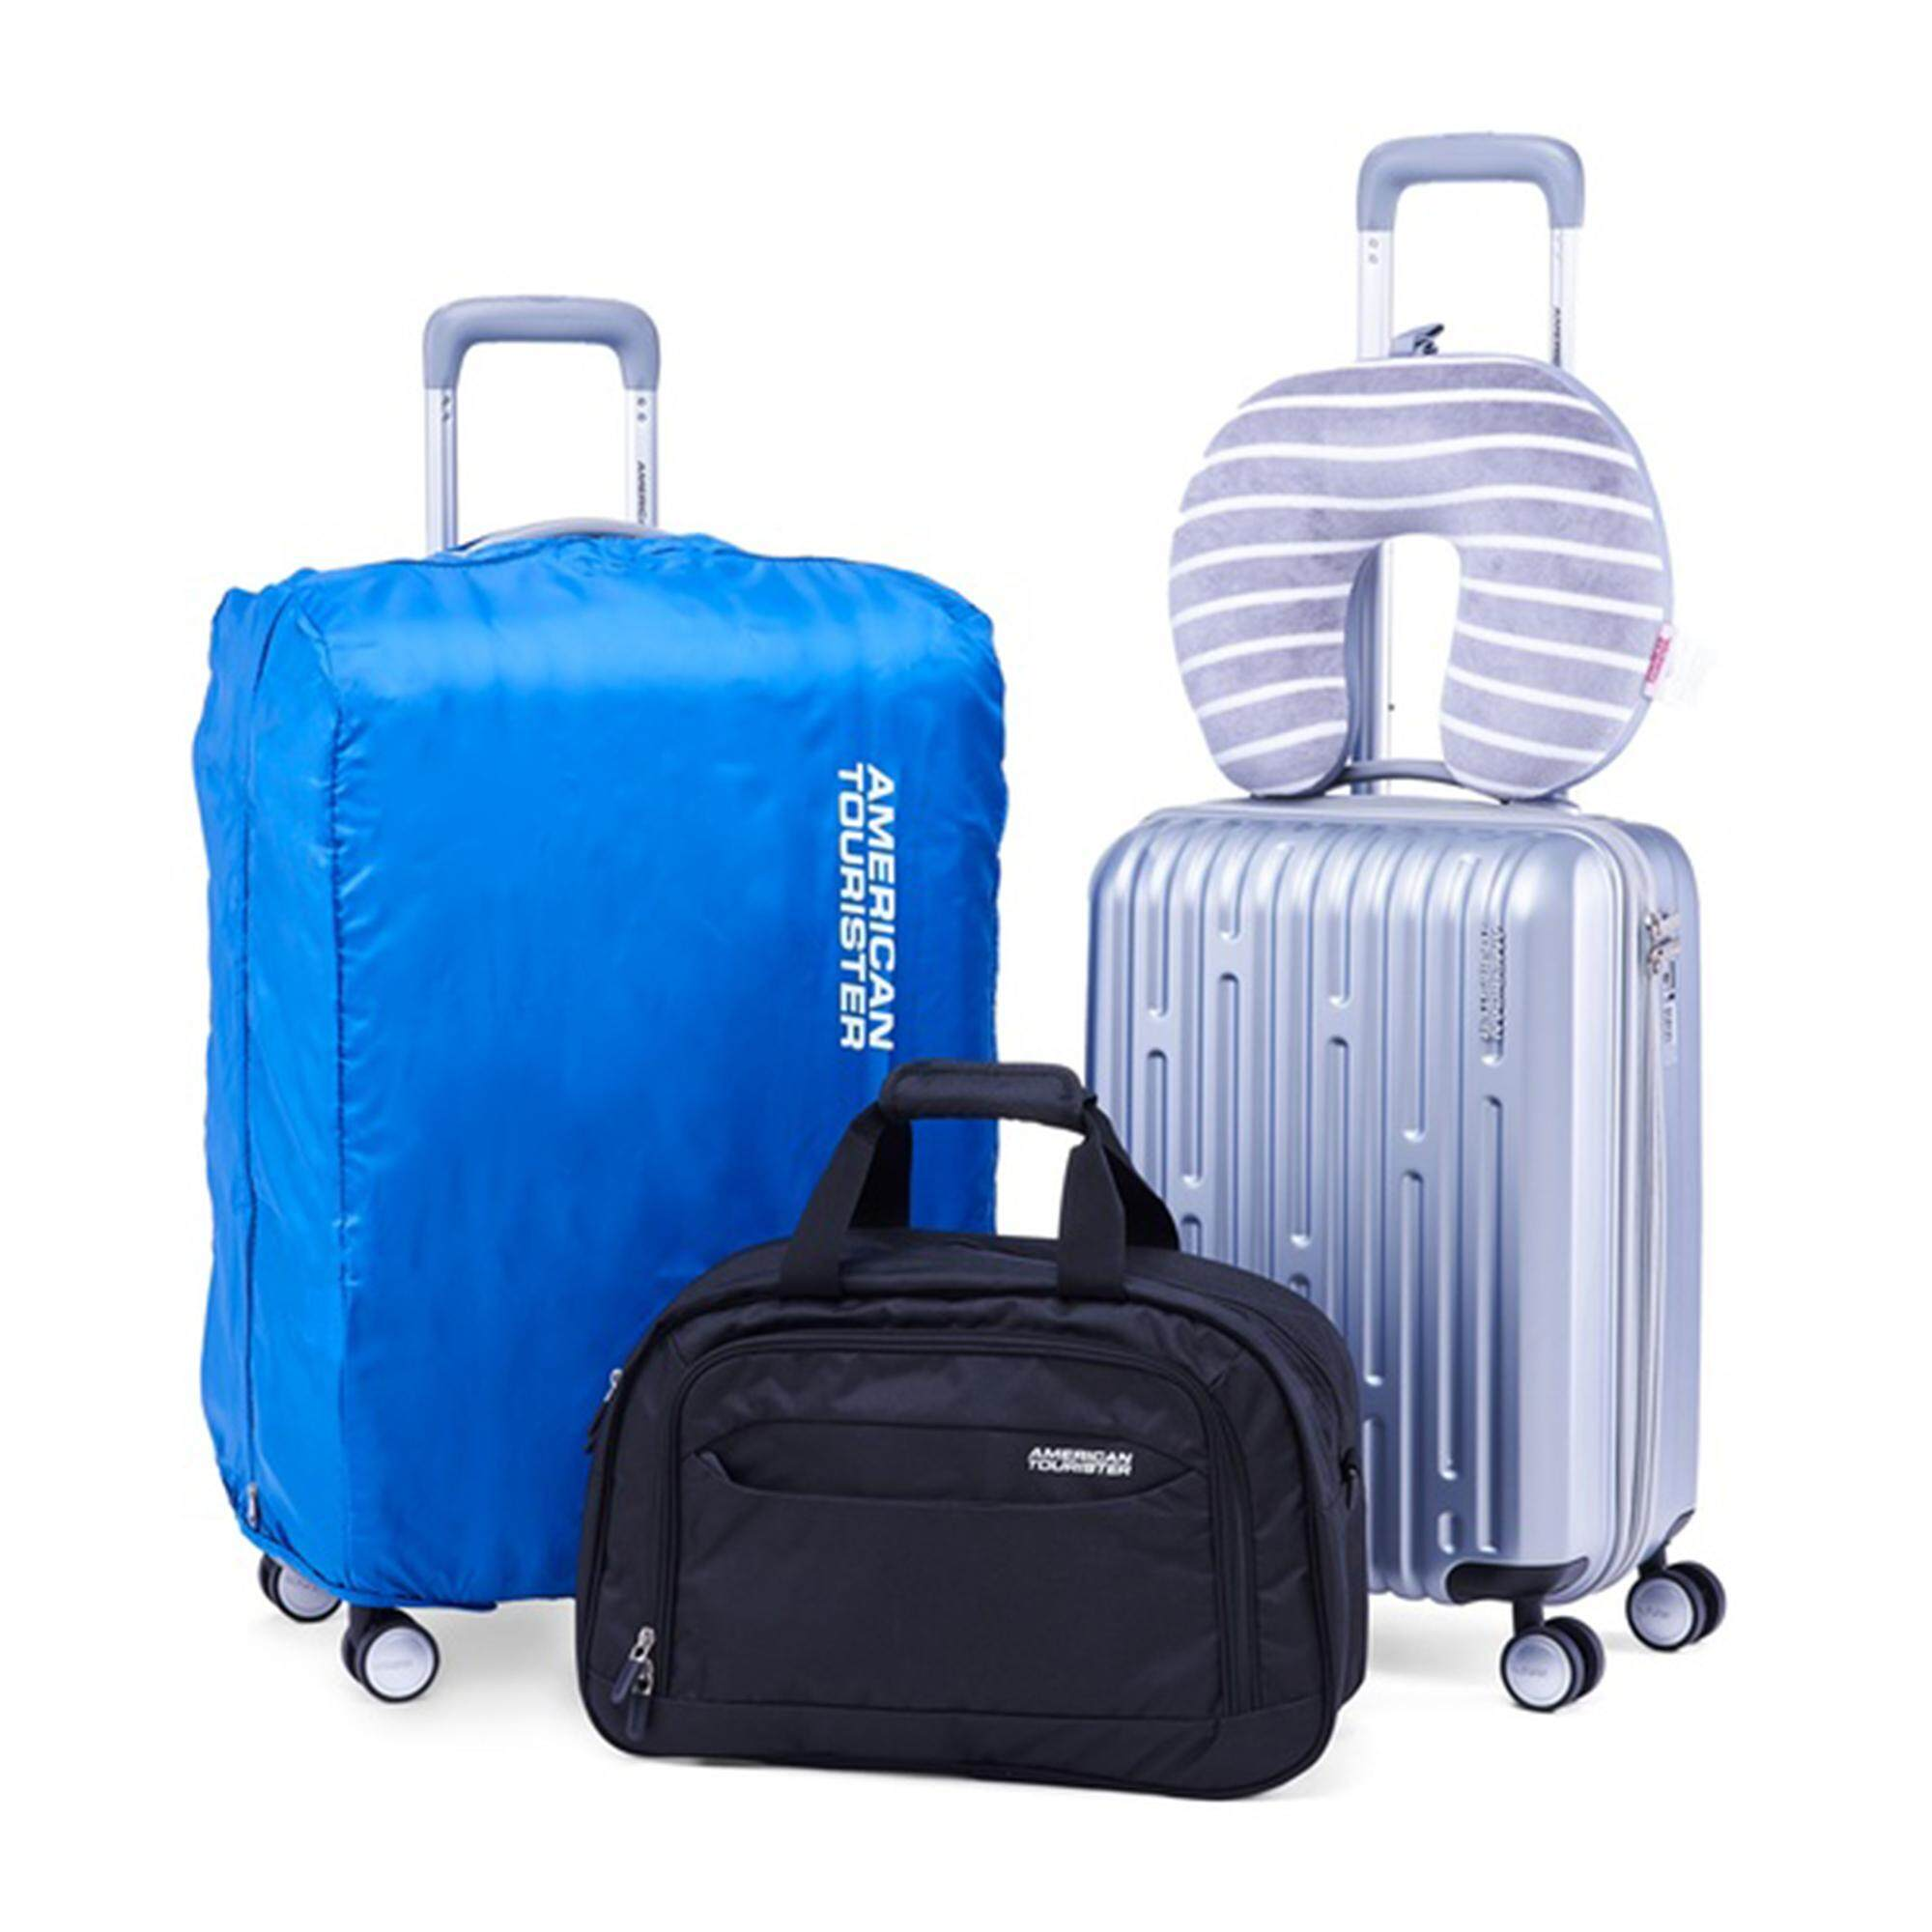 d74d98907 American Tourister - Buy American Tourister at Best Price in ...